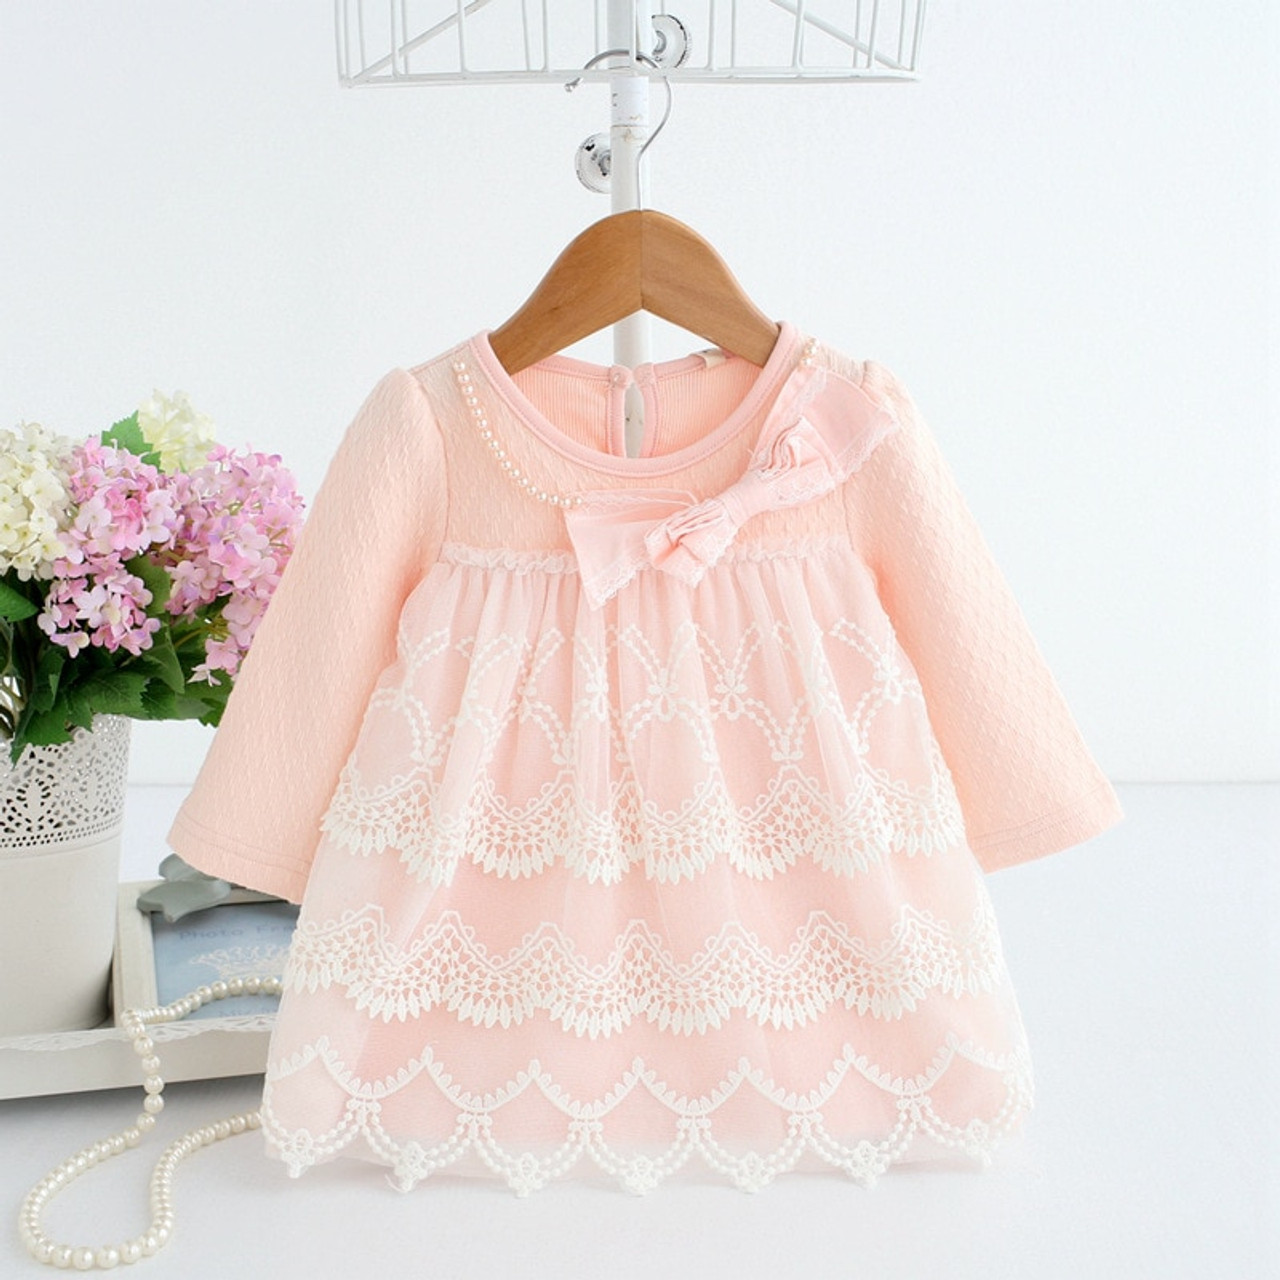 Baby Dress Tiered Dresses Long Sleeve Spring Clothes 7 Year Old Girl  Birthday Dress Soft Cotton Frock B074 Baby Outfits Vestidos